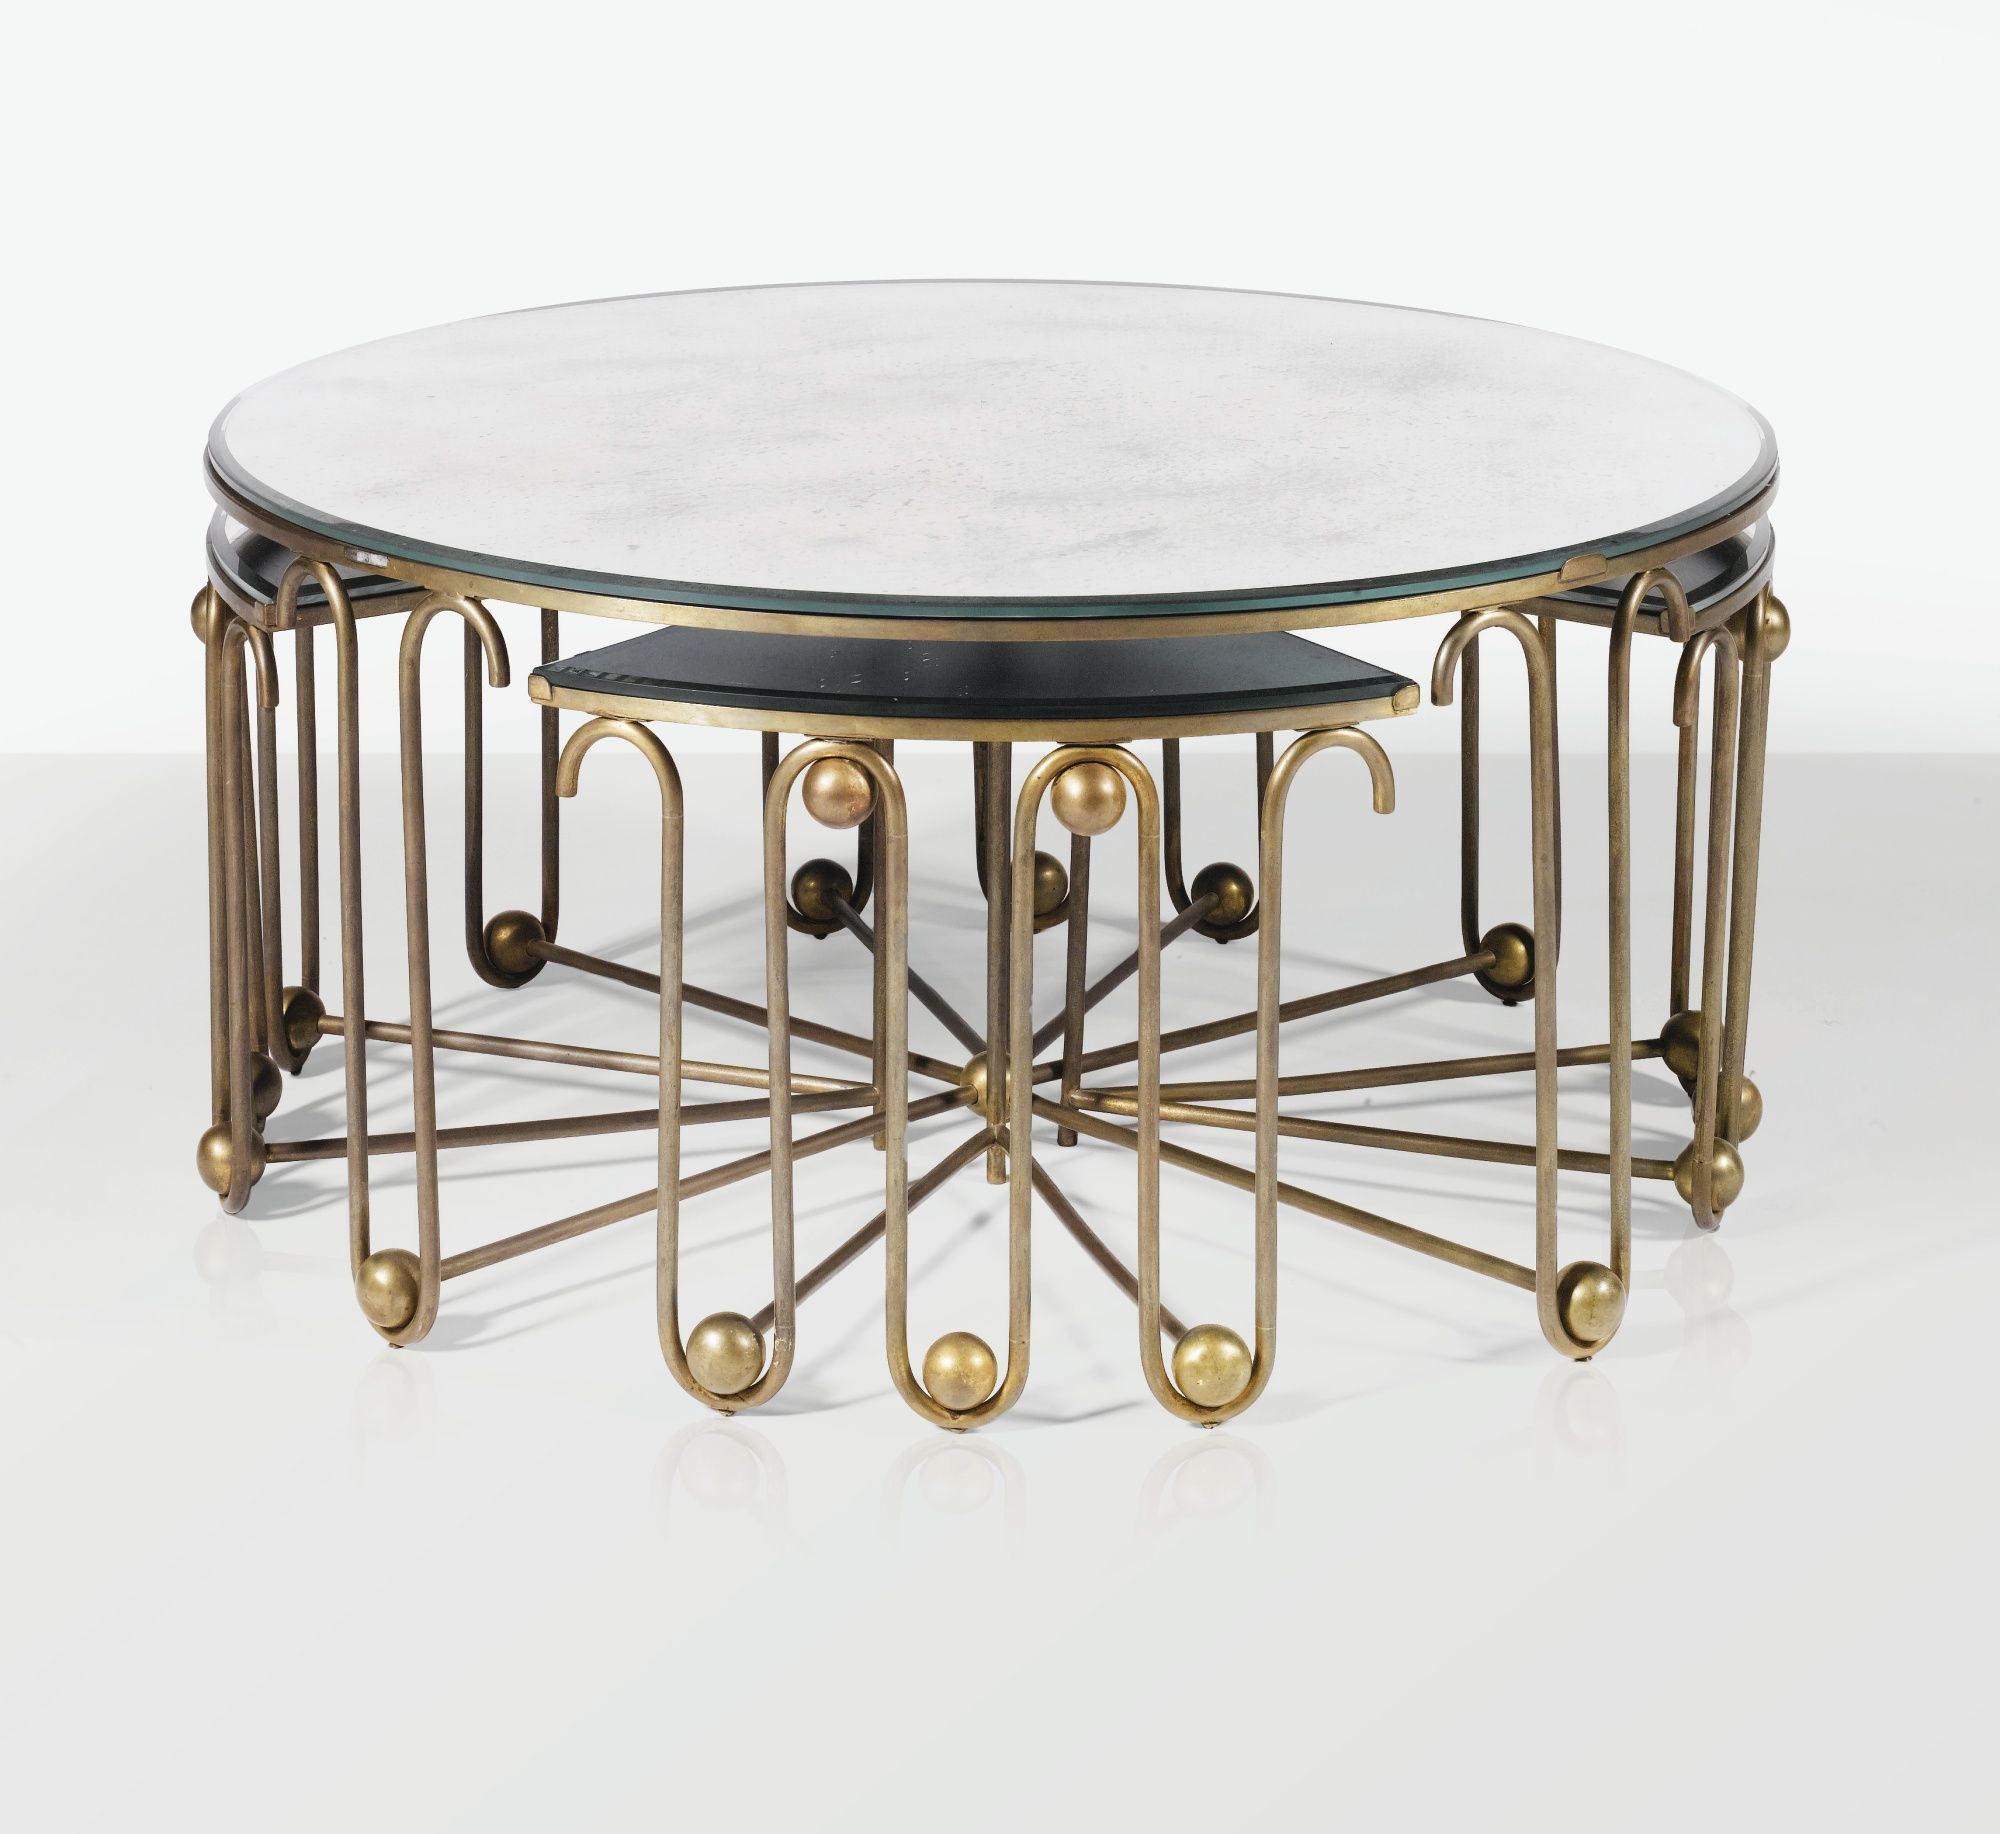 Jean Royere Lot Coffee Table Coffee Table Inspiration Mirrored Coffee Tables [ 1834 x 2000 Pixel ]